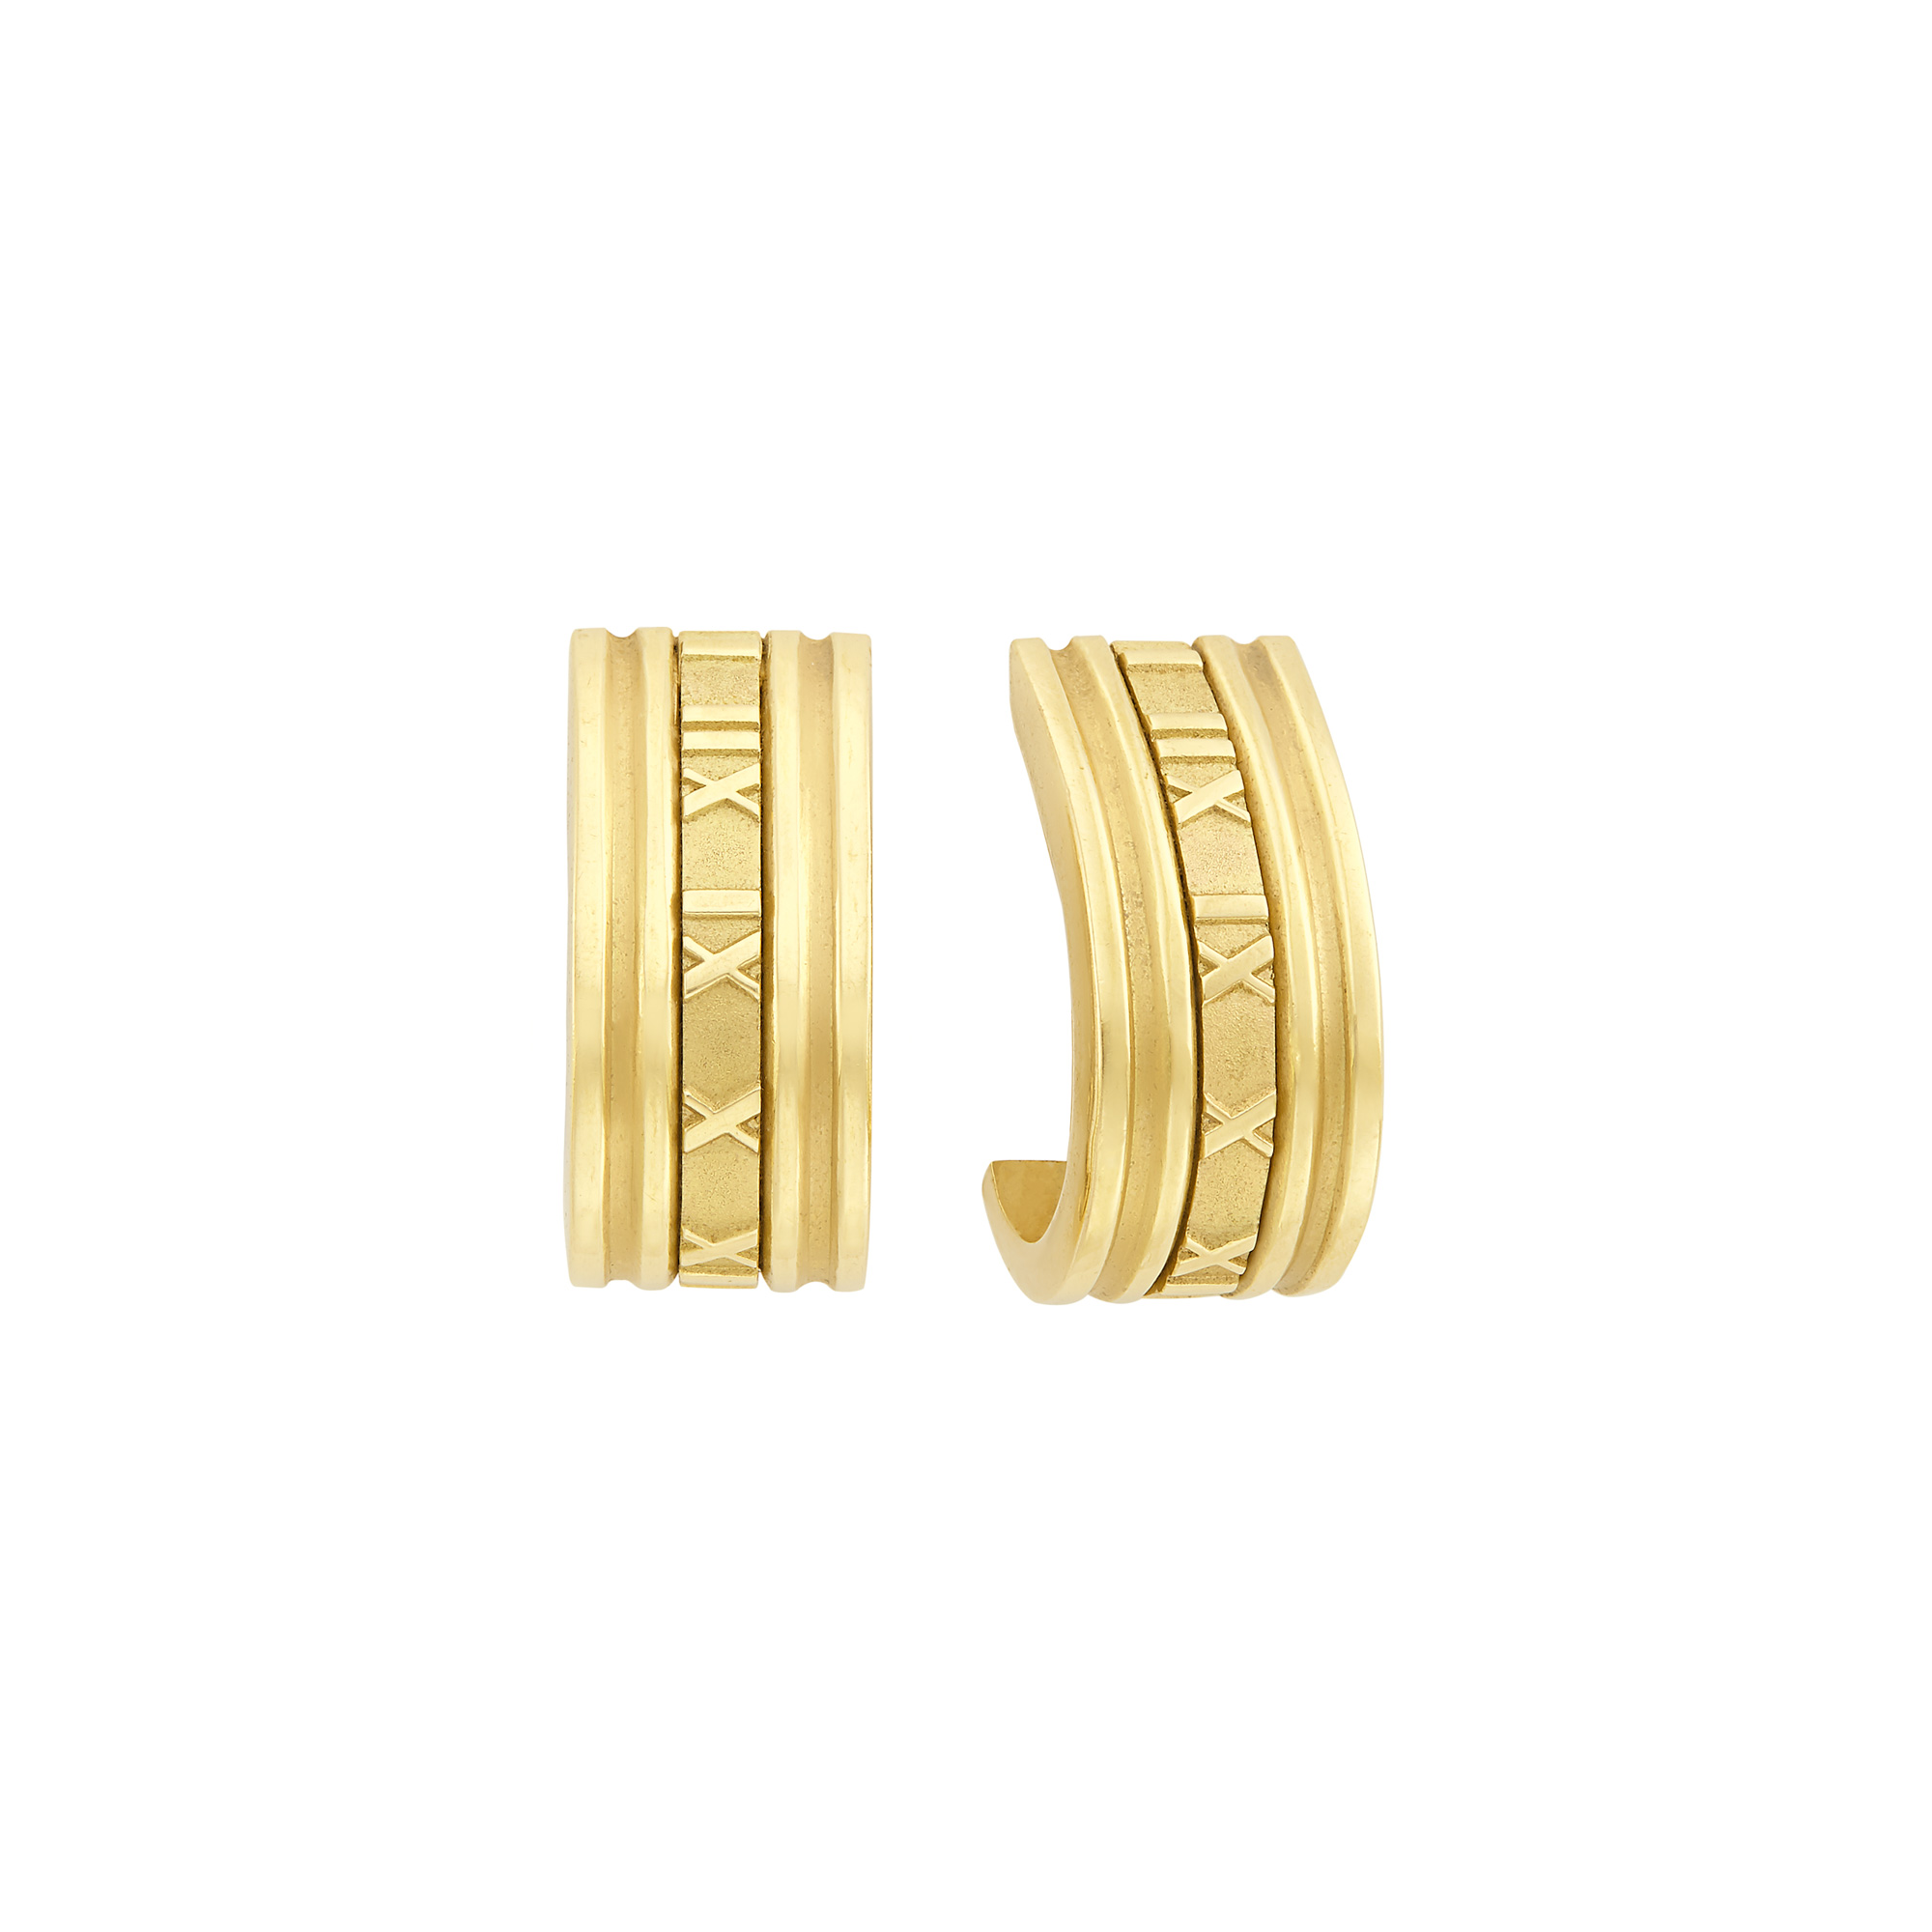 Lot image - Pair of Gold Atlas Hoop Earclips, Tiffany & Co.